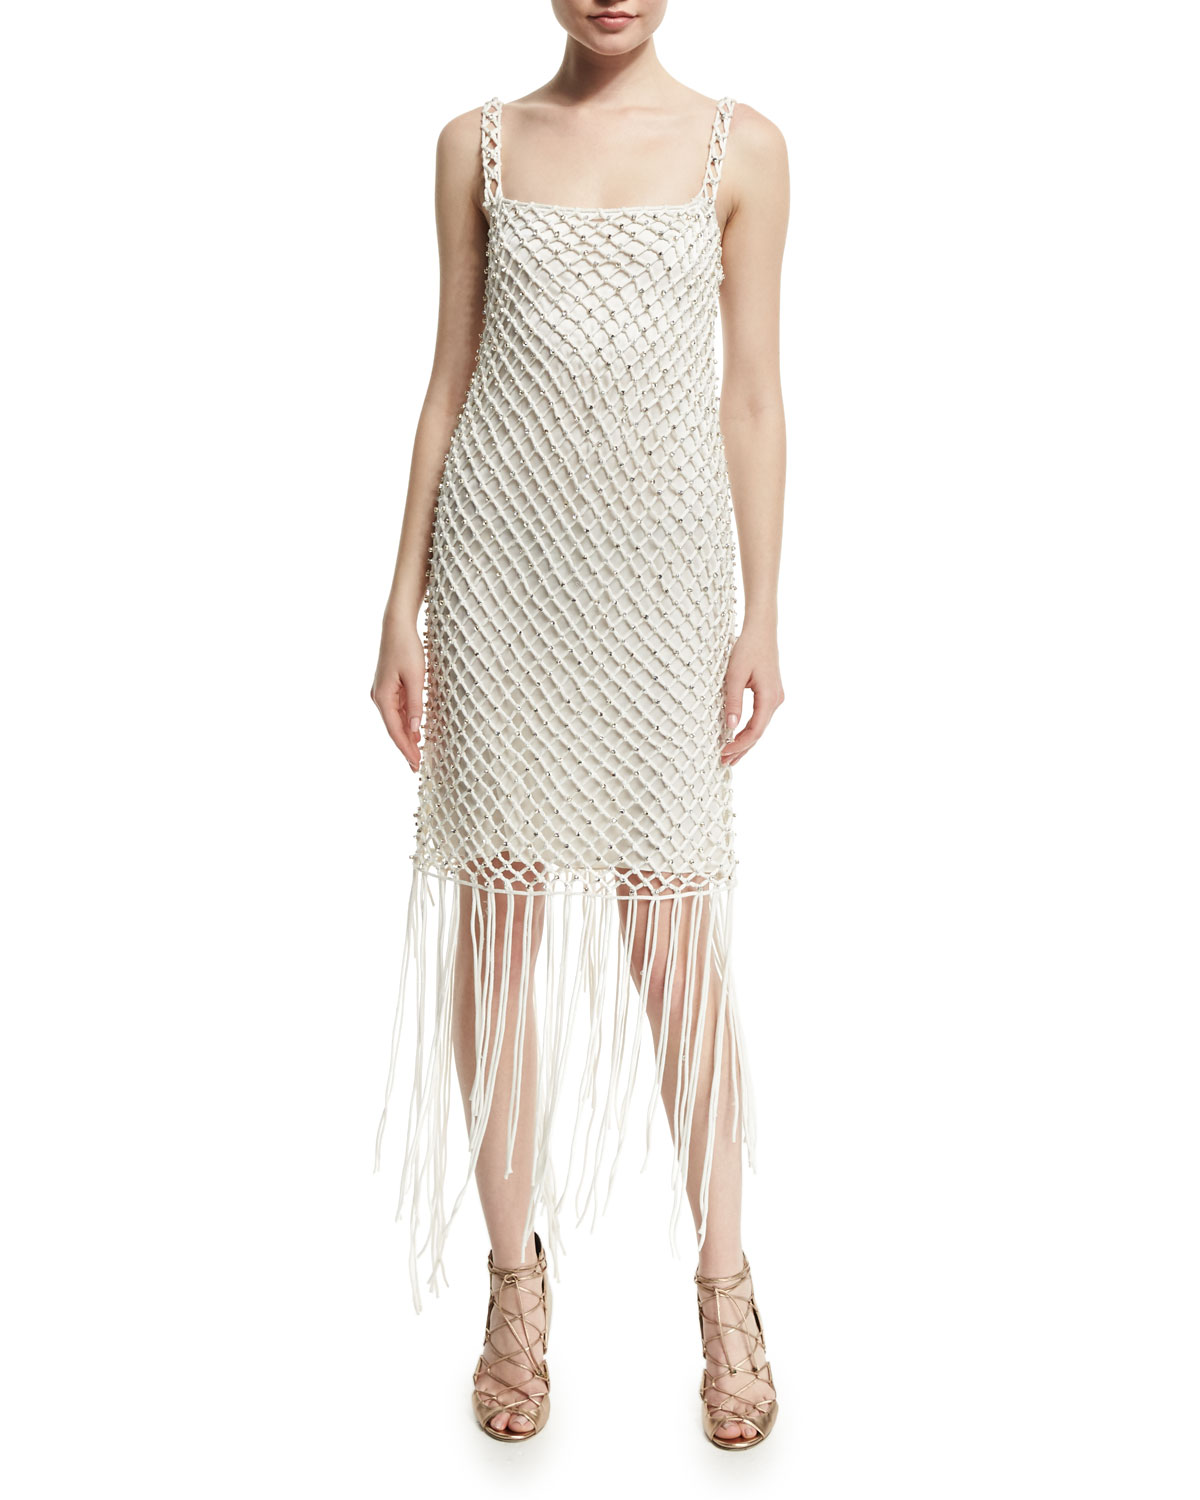 Embellished Macrame Camisole Dress, Ivory